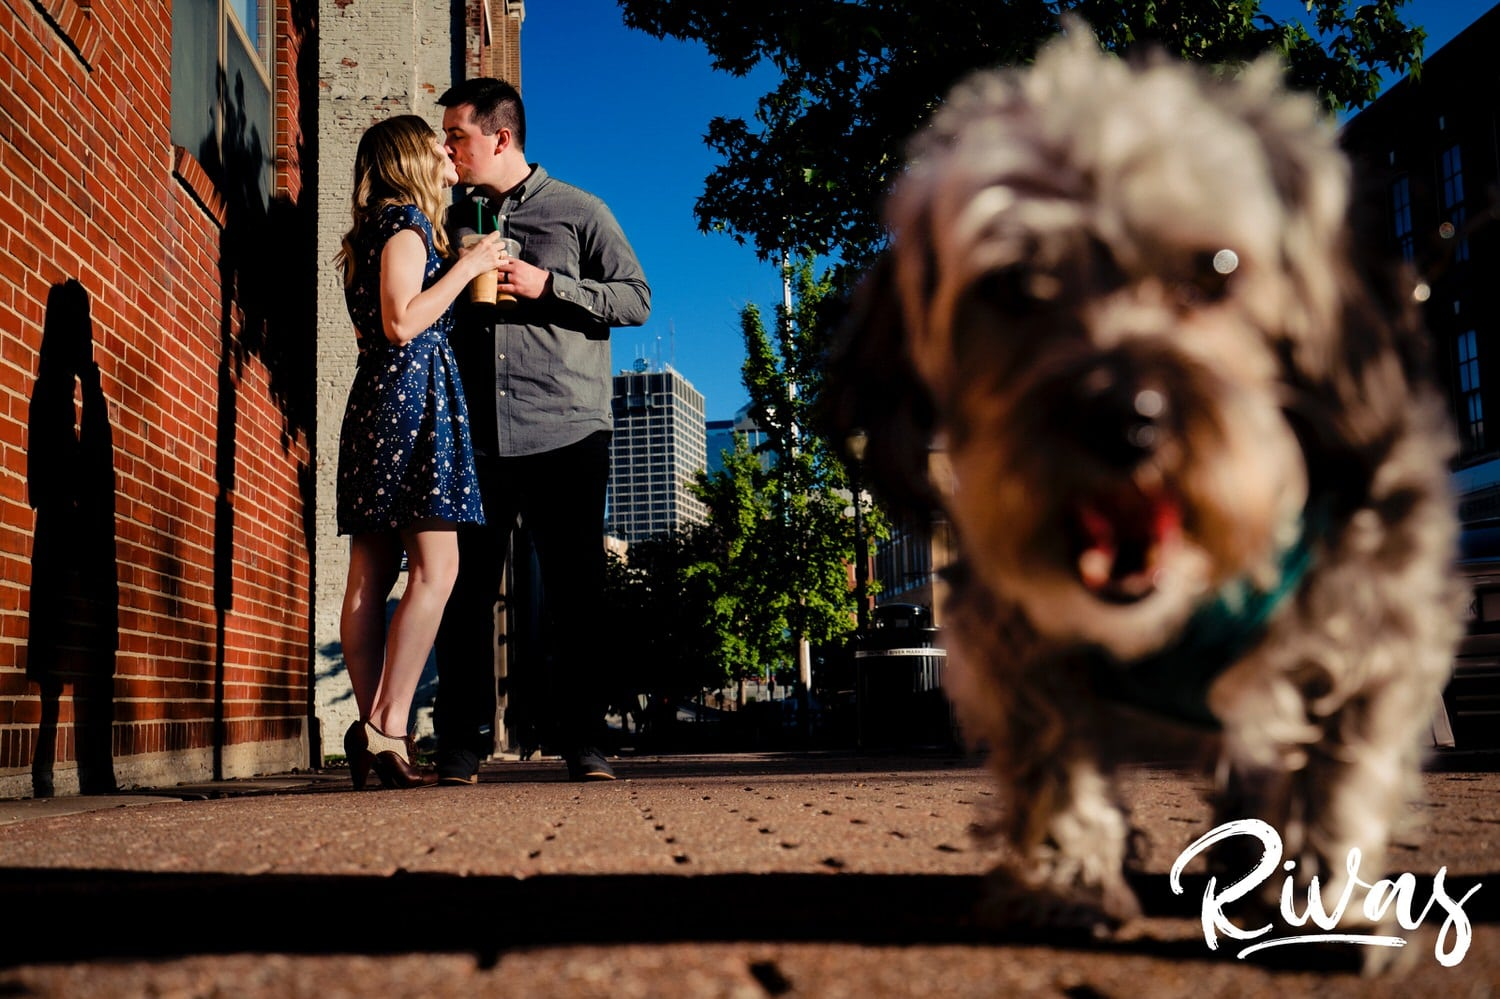 A colorful picture of an engaged couple standing in the background of the image, holding two ups of coffee and sharing a kiss as their gray puppy runs towards the camera, slightly out of focus during their spring engagement session in Kansas City's City Market.